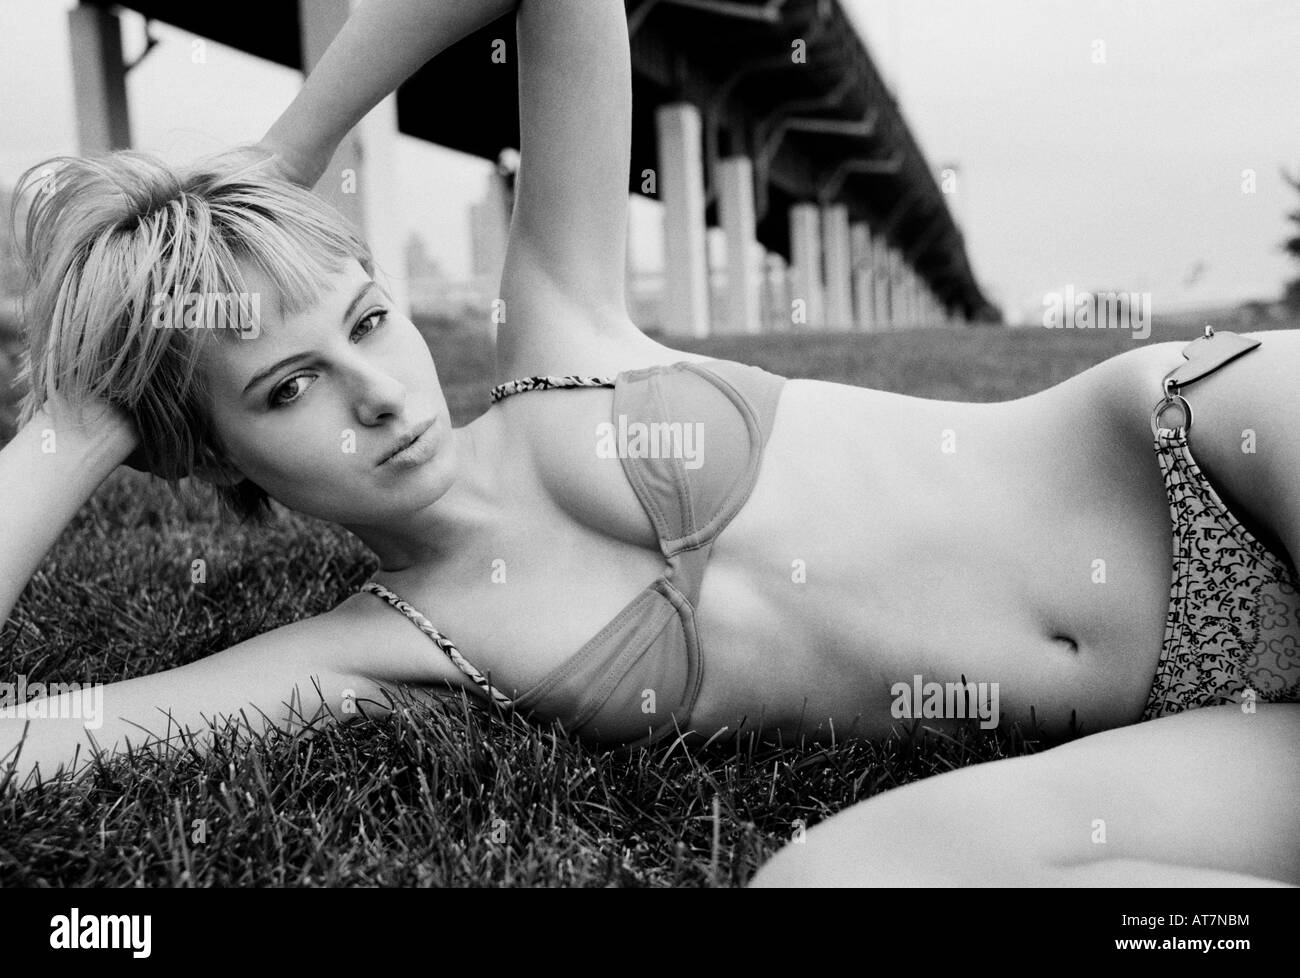 Young woman wearing bikini in Riverside Park New York City - Stock Image